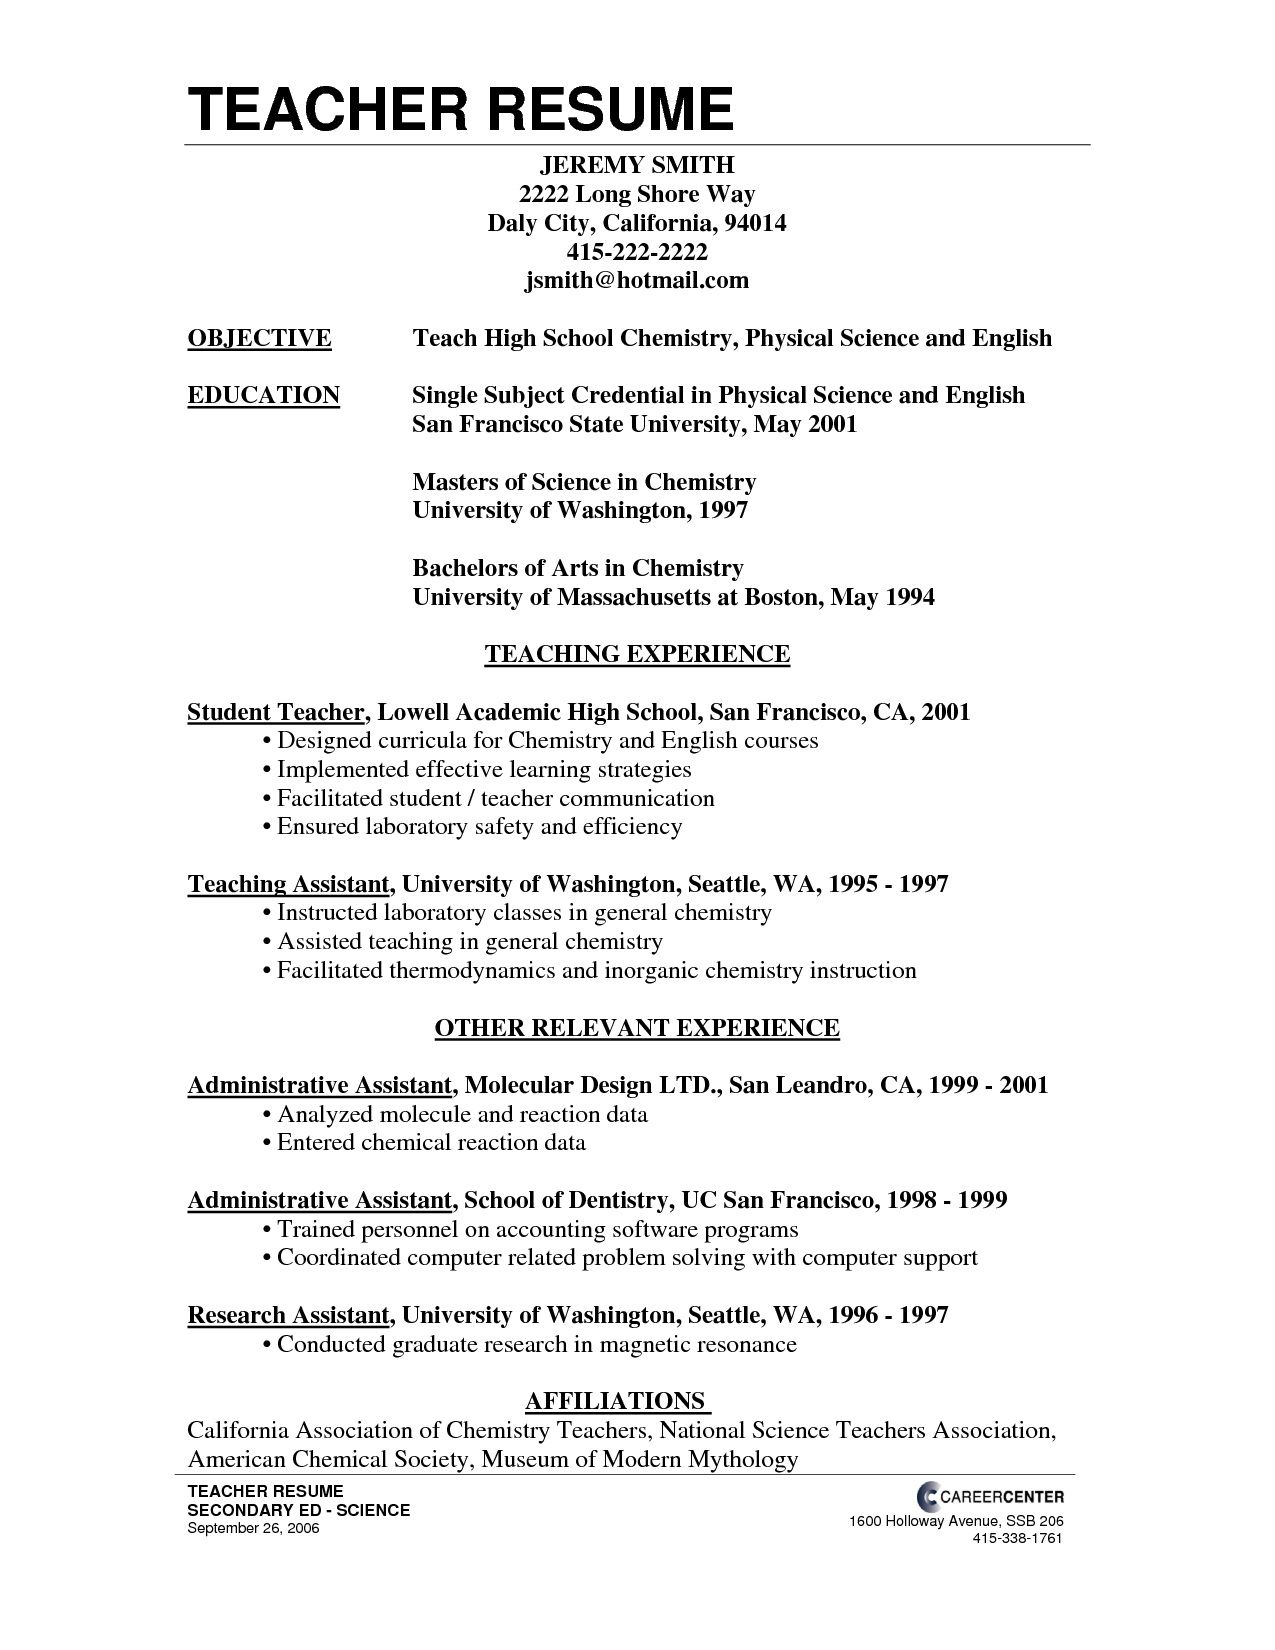 Resume For Elementary Teacher High School Teacher Resume Http Jobresumesample